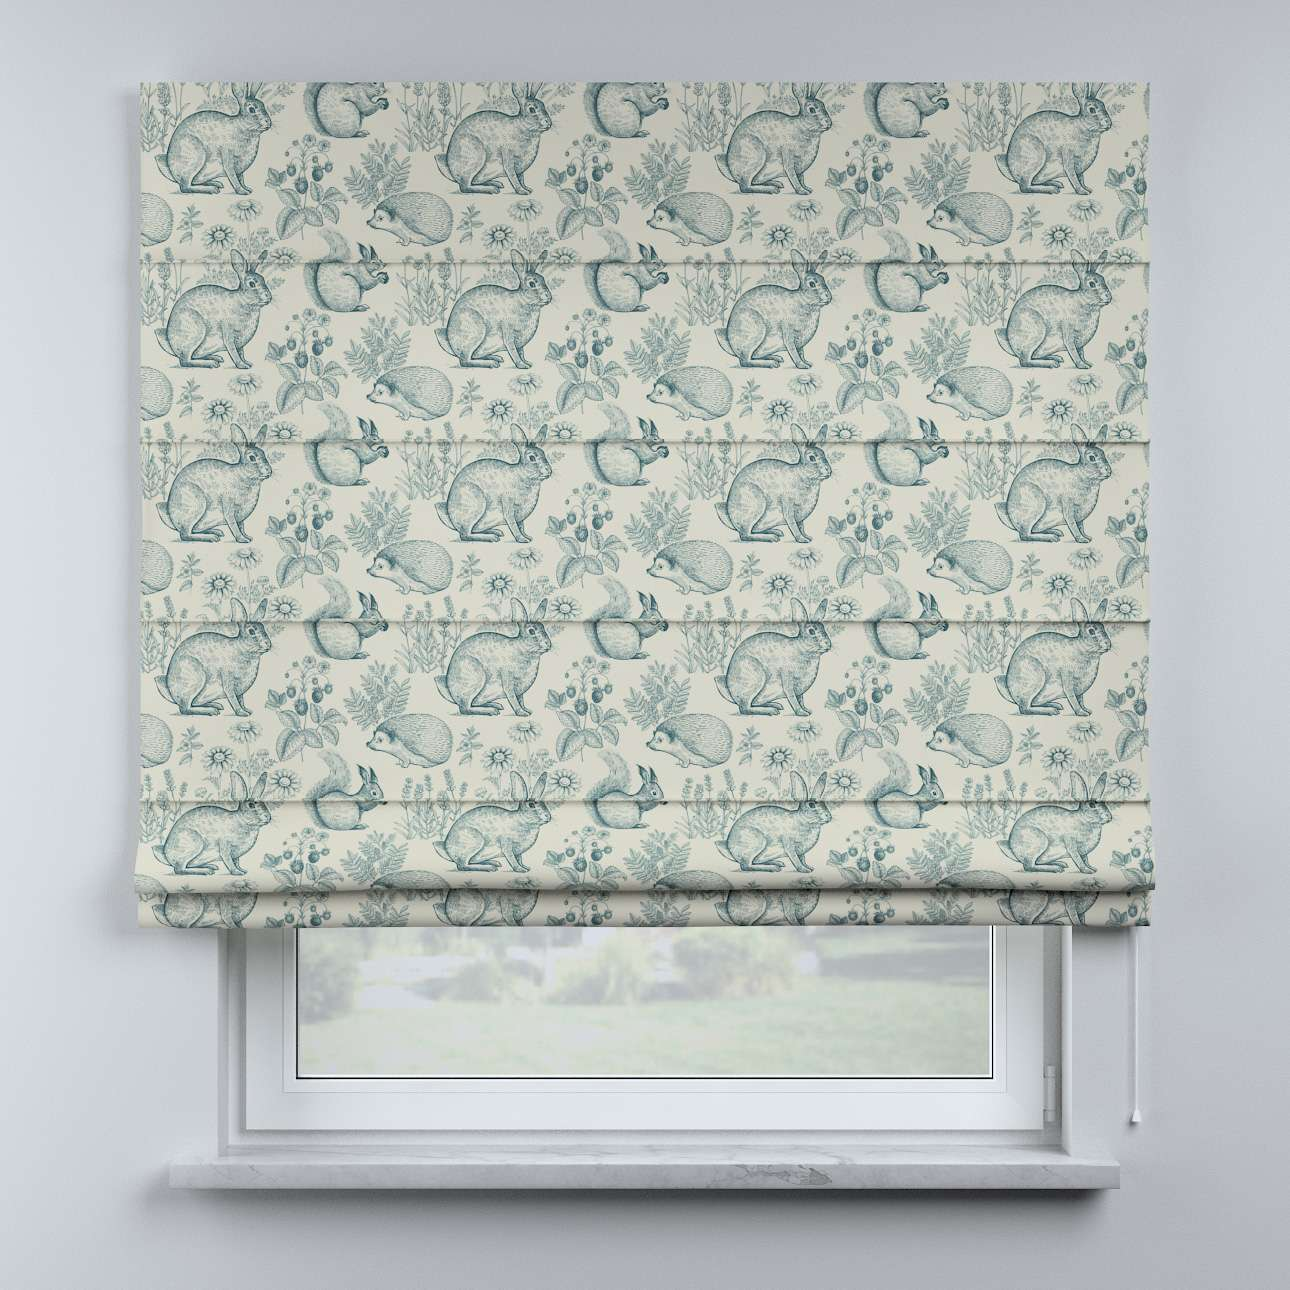 Billie roman blind in collection Magic Collection, fabric: 500-04